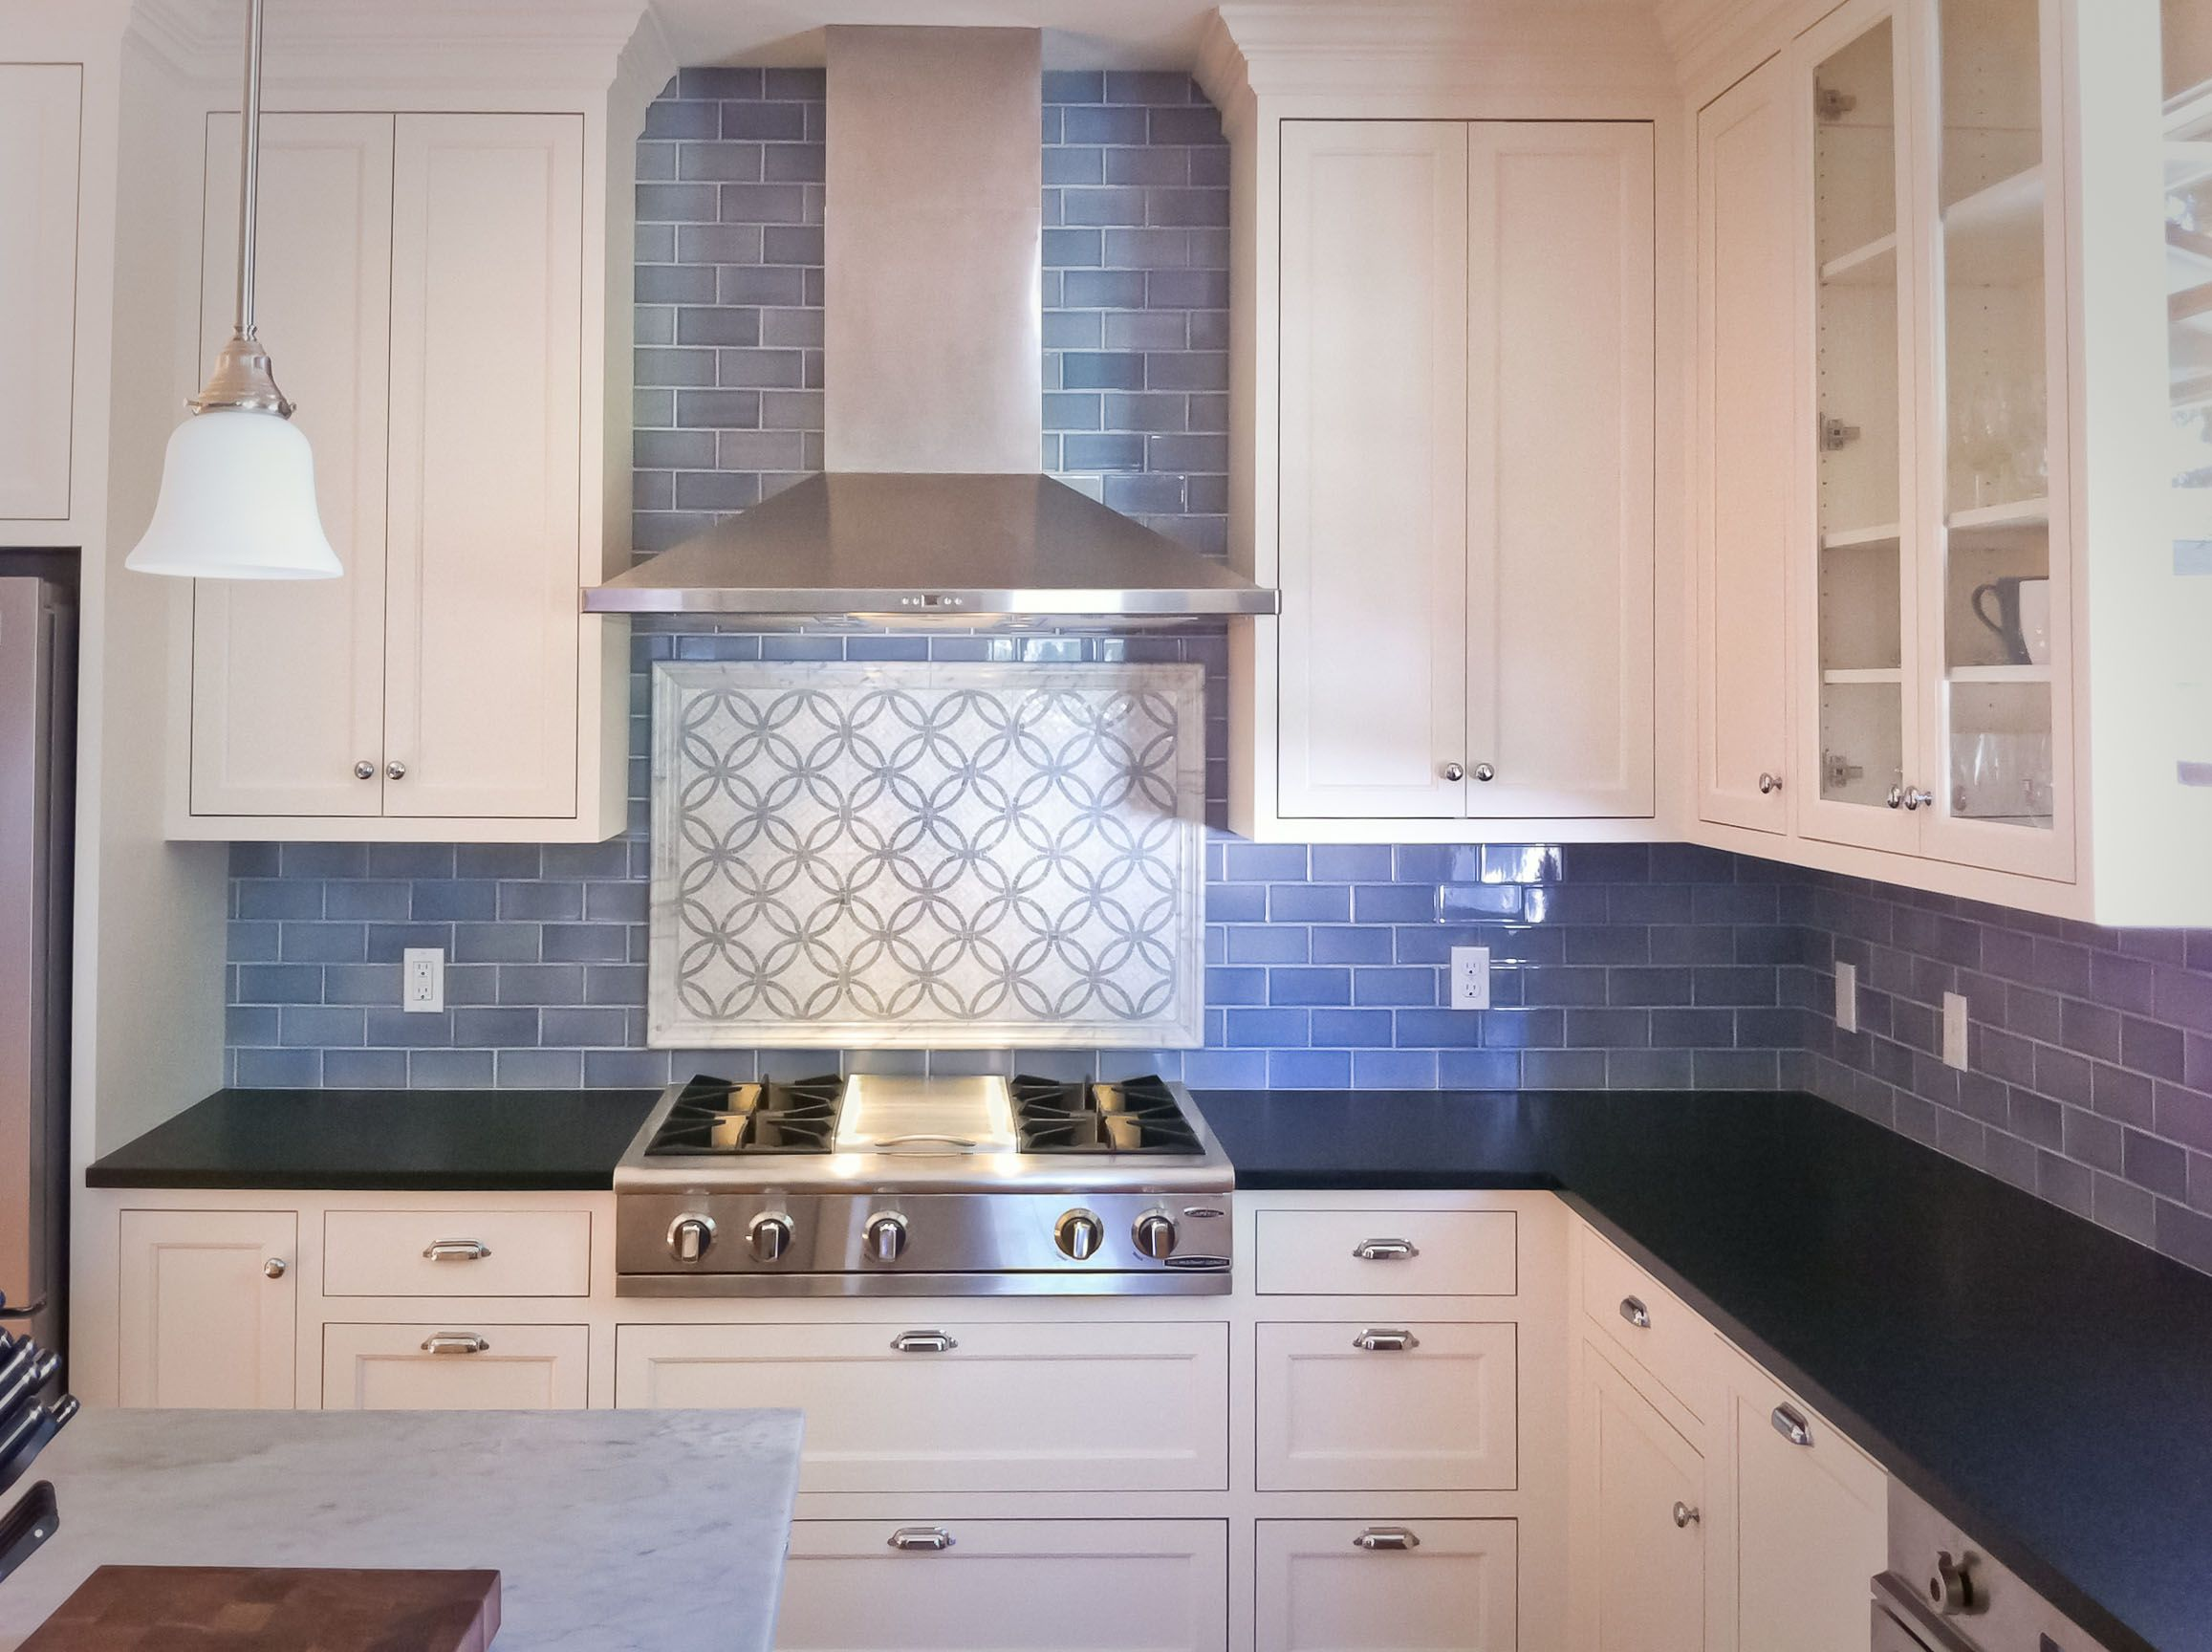 backsplash tiles for kitchen | projects - smithcraft fine